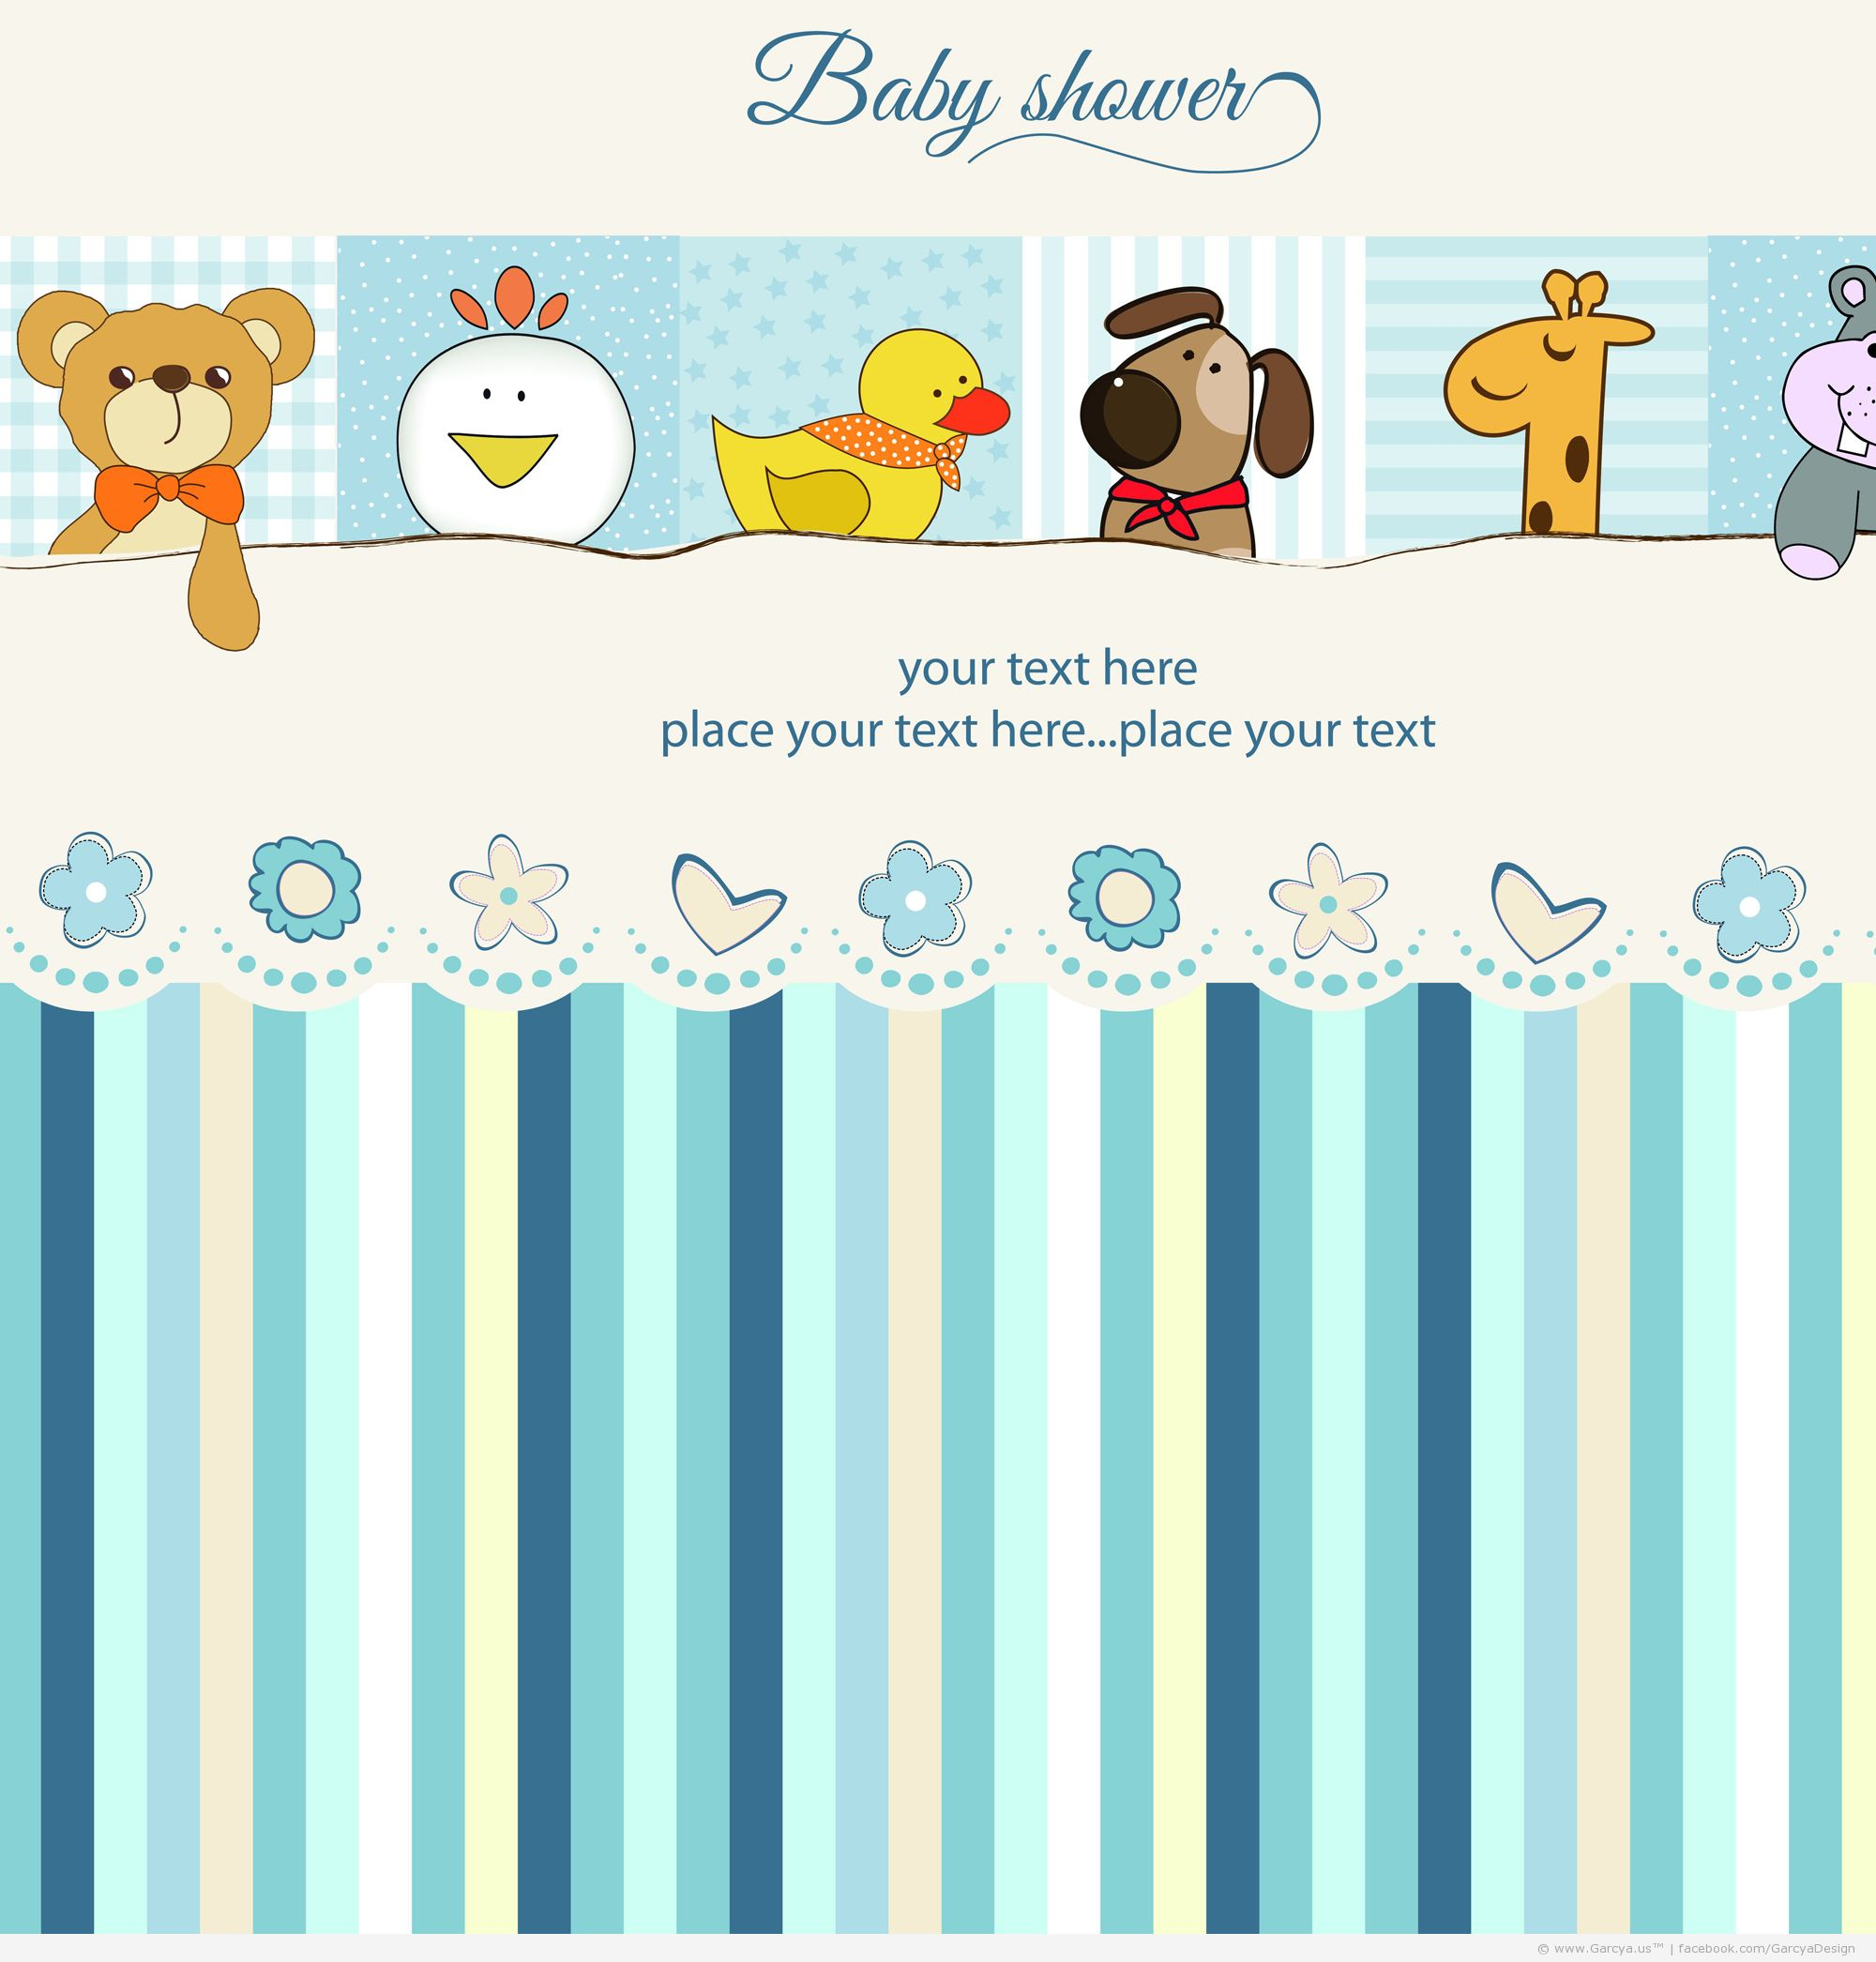 Baby Shower Wallpaper Images - WallpaperSafari